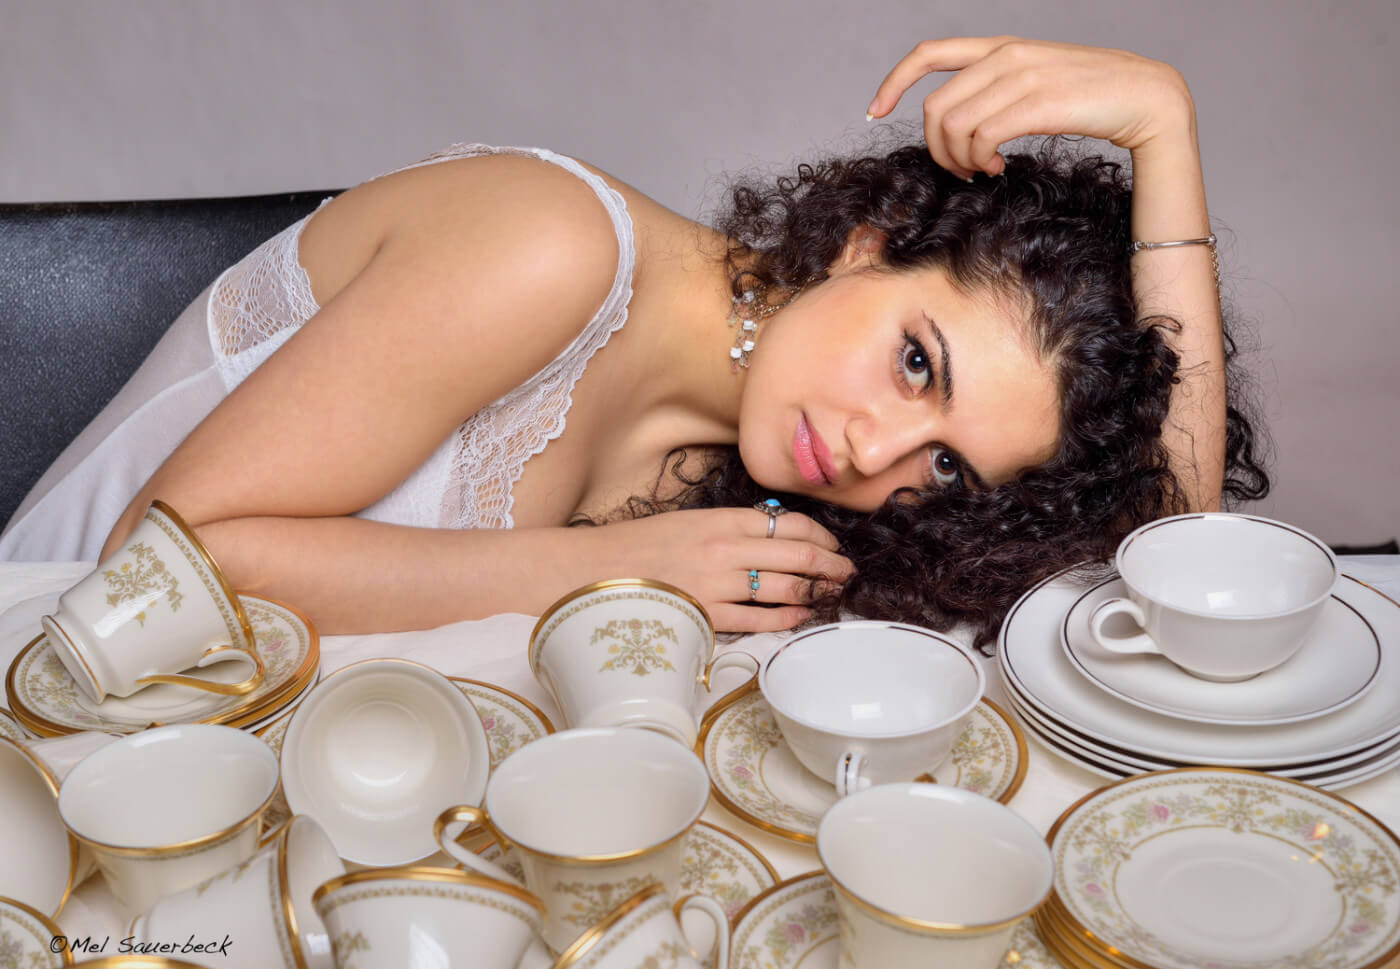 Beautiful dark, curly haired, young woman sitting with many tea cups